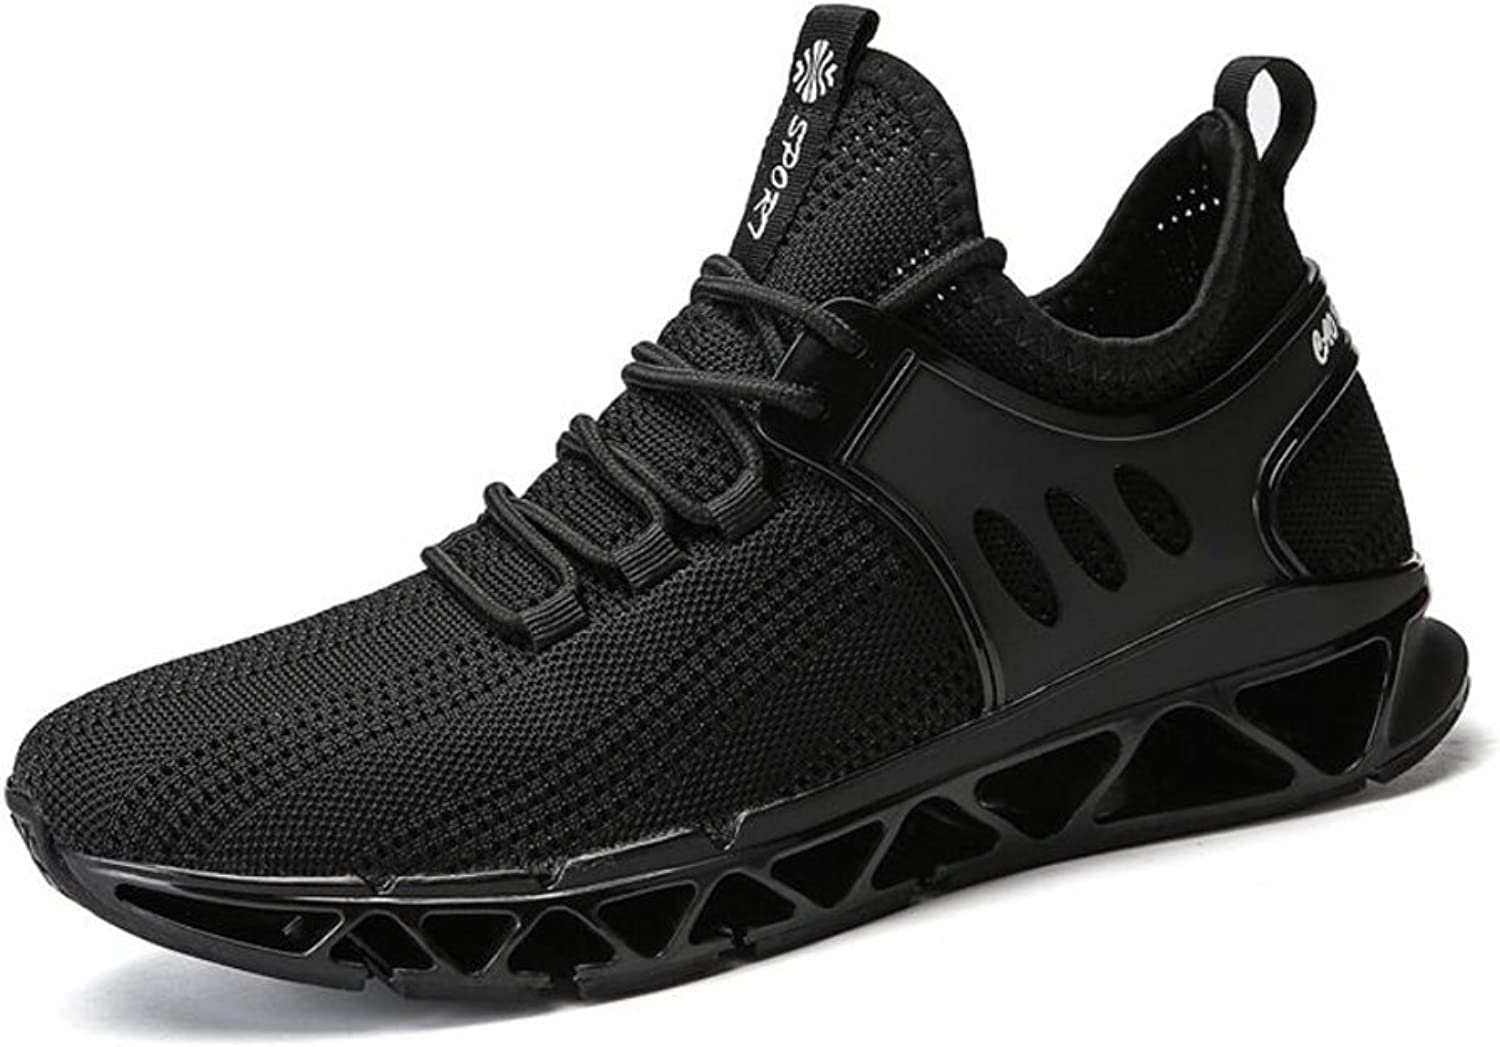 Men's Athletic shoes,Knit,Spring Fall,Breathable Low-Top Sneakers,Non-Slip Travel,Hiking shoes,Light Soles,Comfort Running shoes,Lightweight Walking shoes, Climbing shoes,Office,EVA